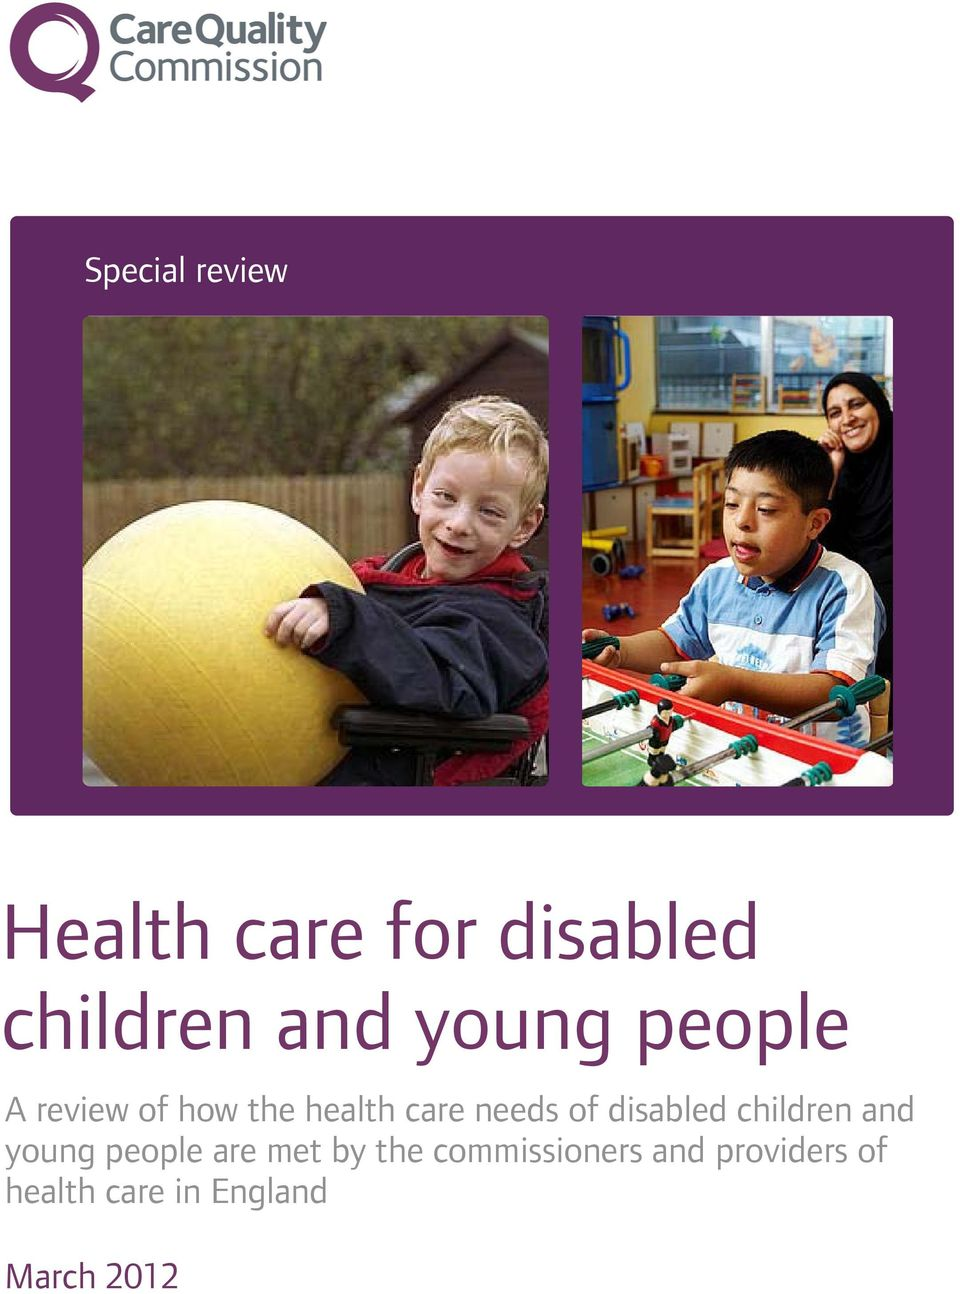 disabled children and young people are met by the